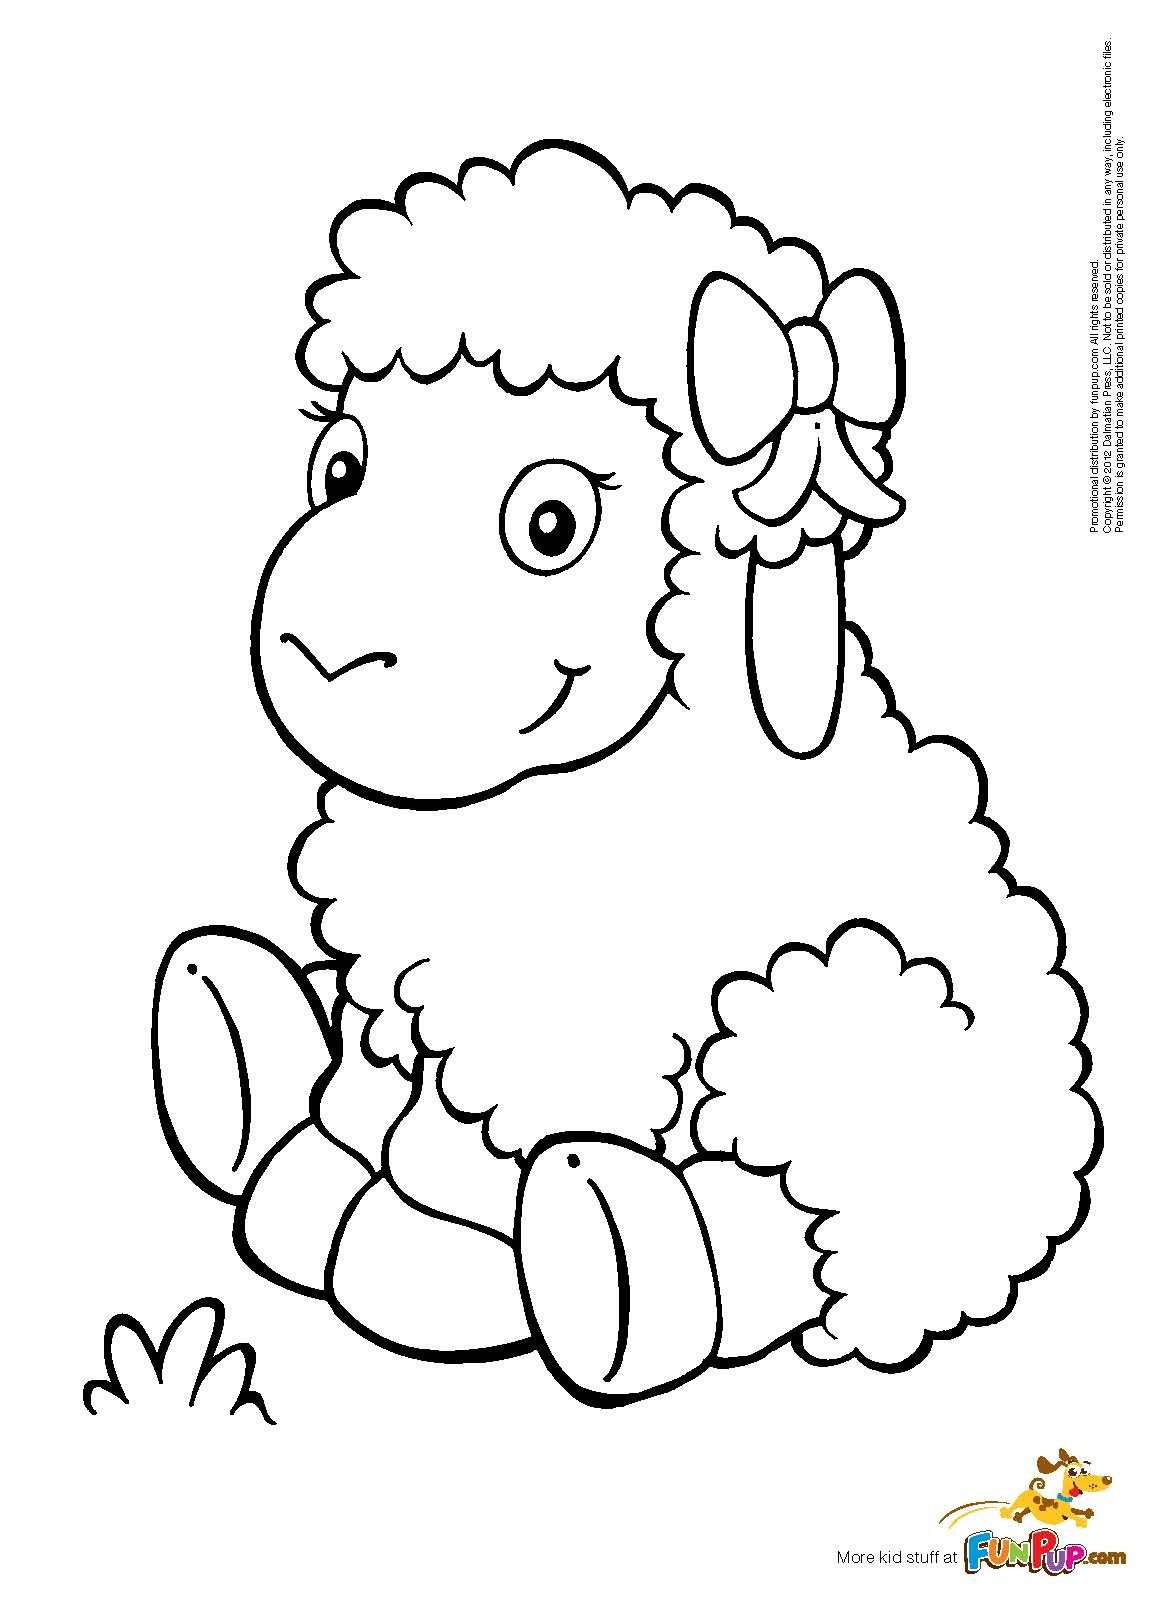 Lamb colouring pages to print - Happy Sheep Coloring Page